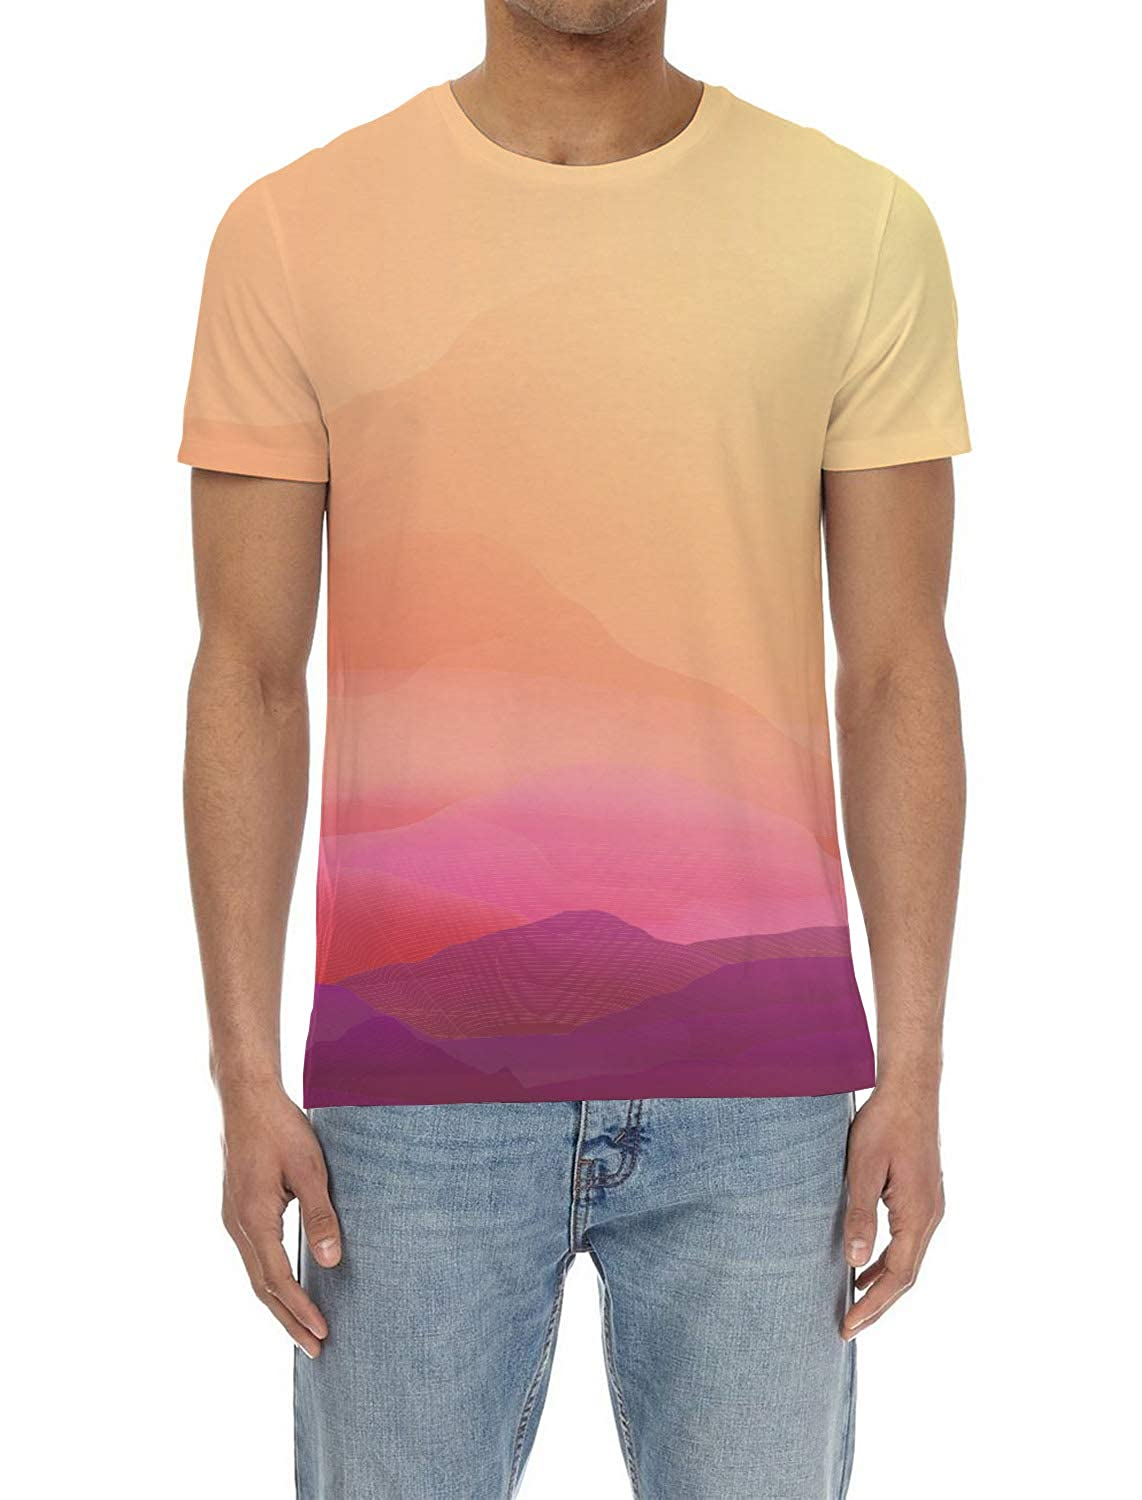 EZON-CH Mens Short-Sleeve Crewneck T-Shirt,Assorted Fashion 3D Printing Male Blouse Tee Tops,Multicolor Ripple for Youth,